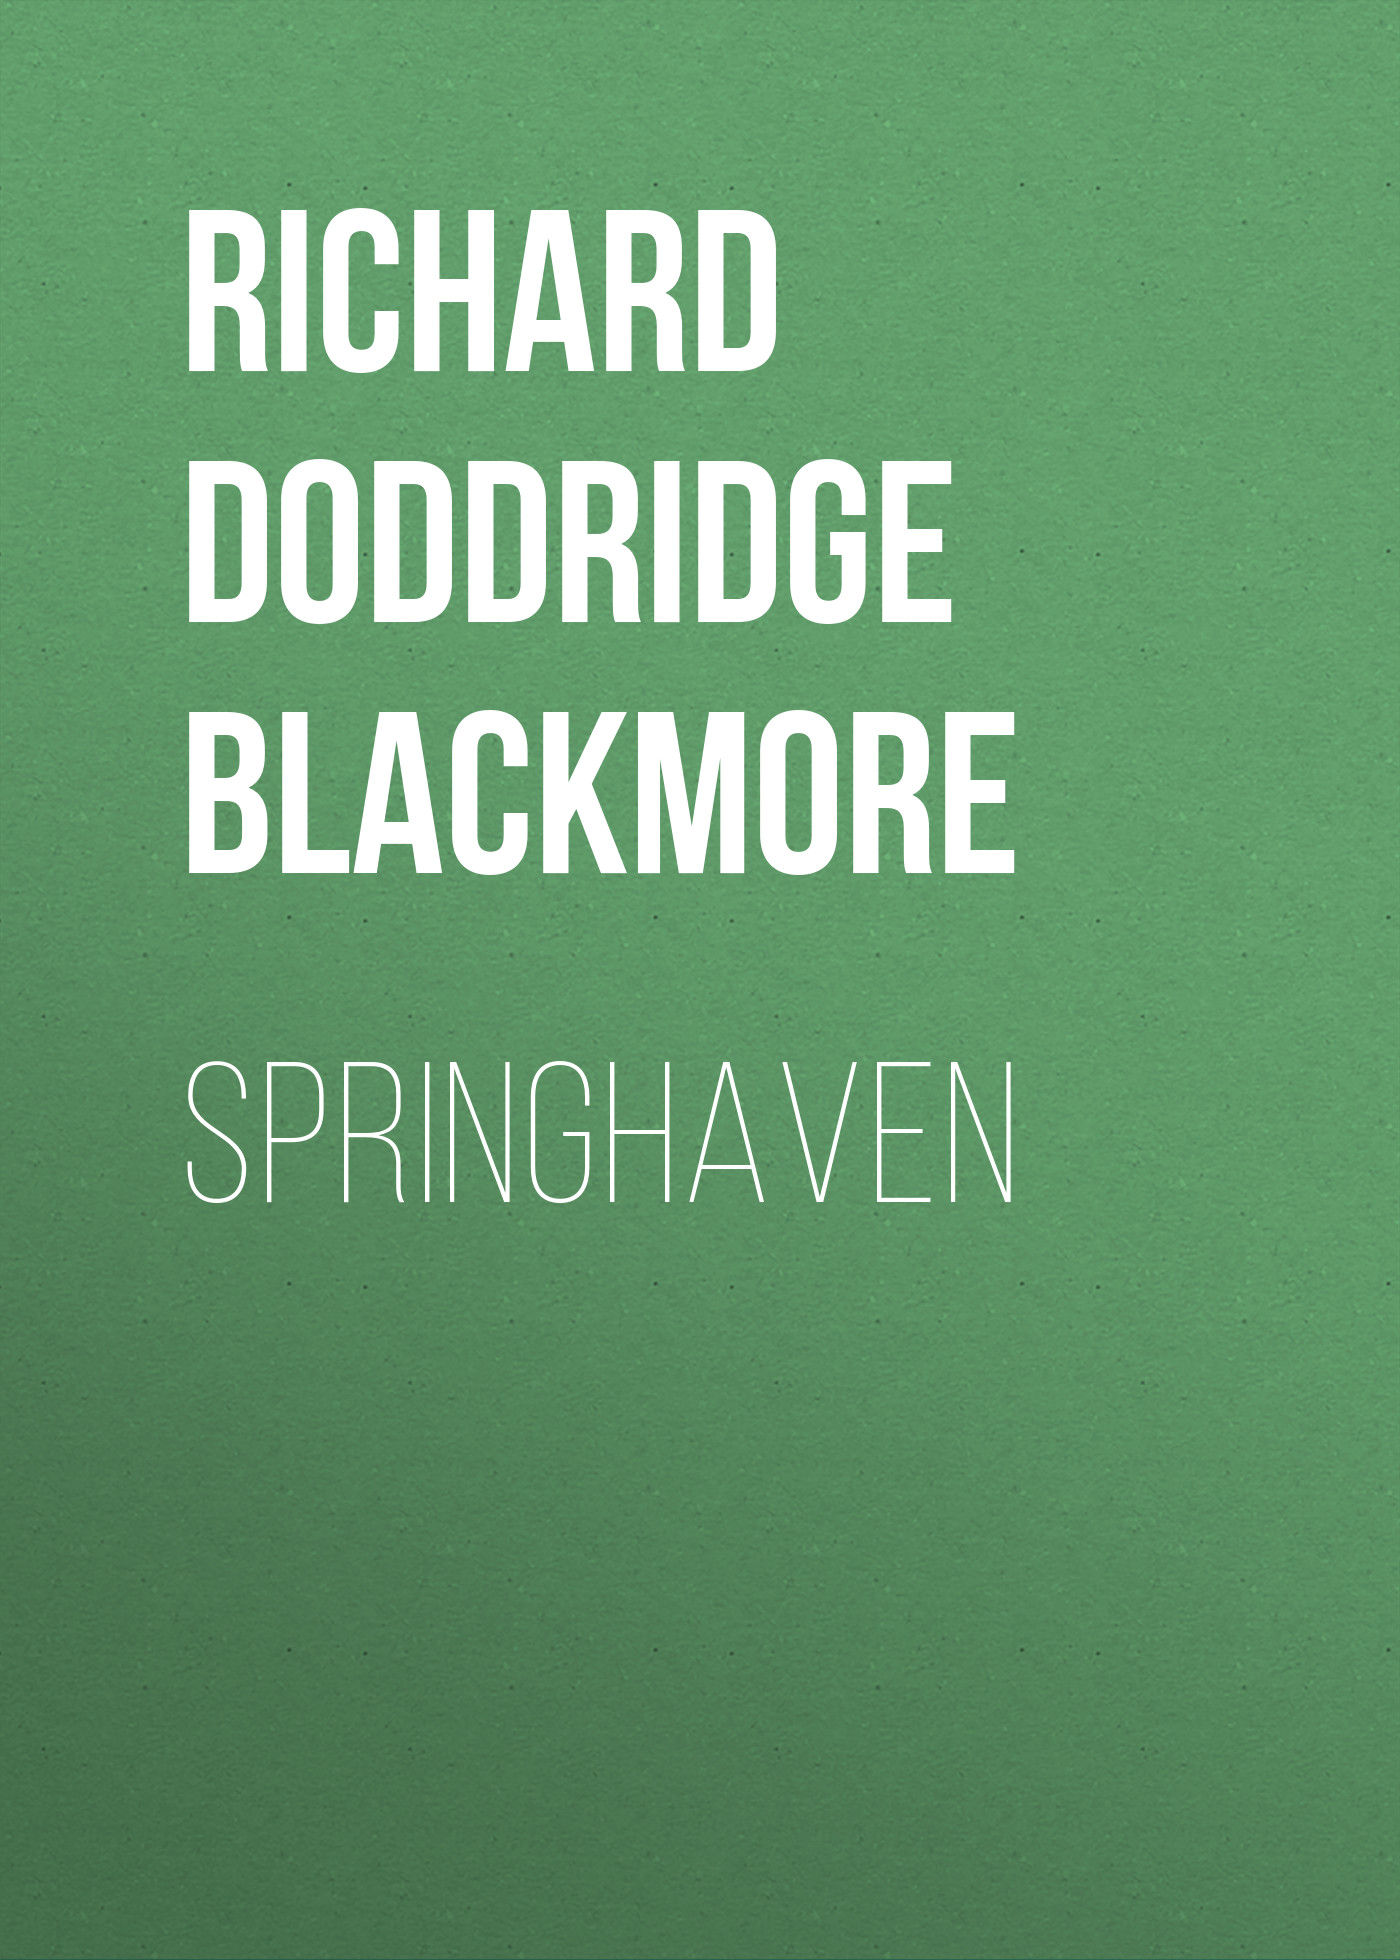 лучшая цена Richard Doddridge Blackmore Springhaven